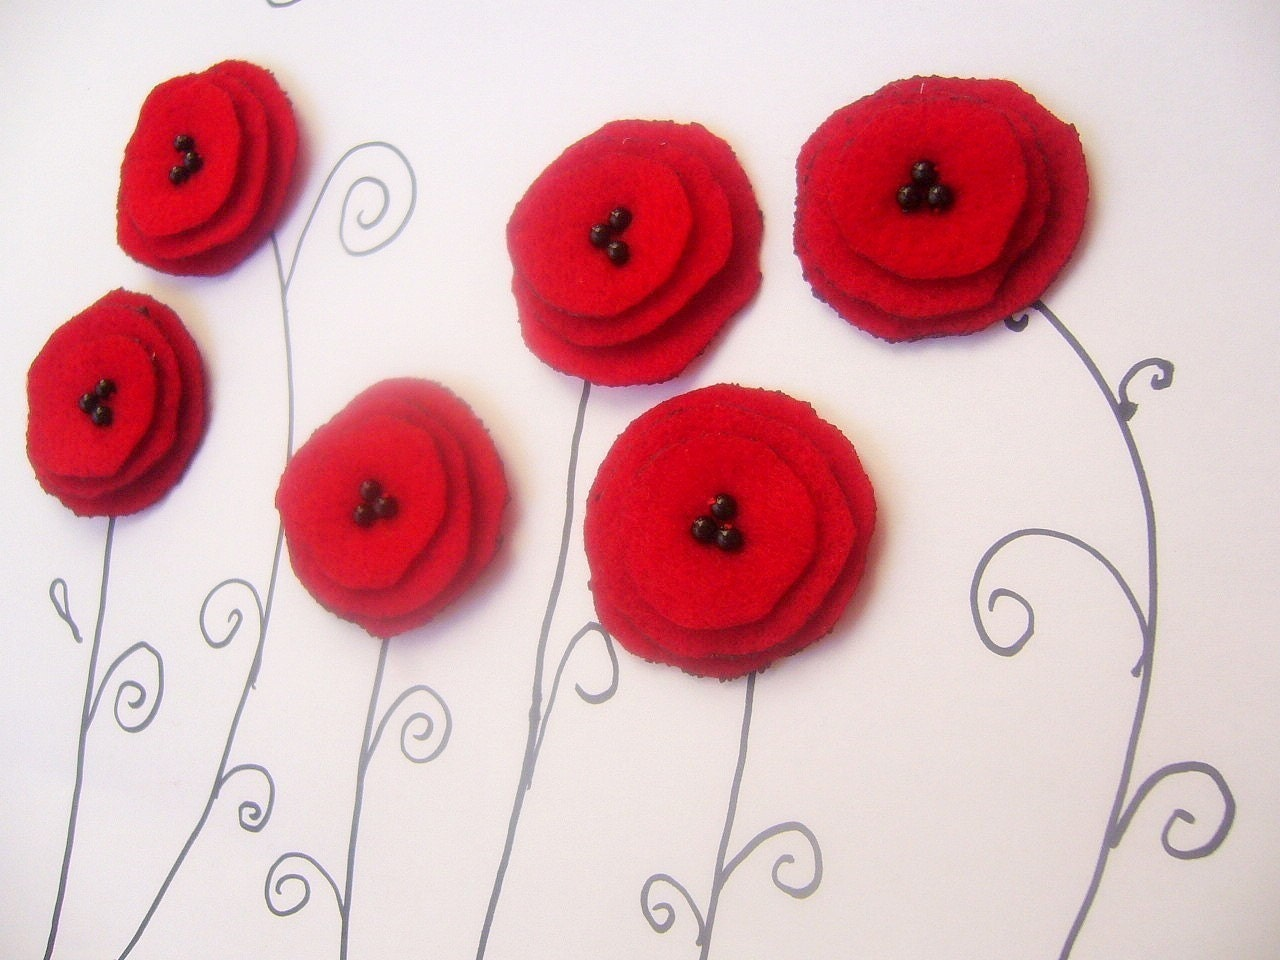 6 Red felt flower applique handmade poppy sew on embelishment glue on